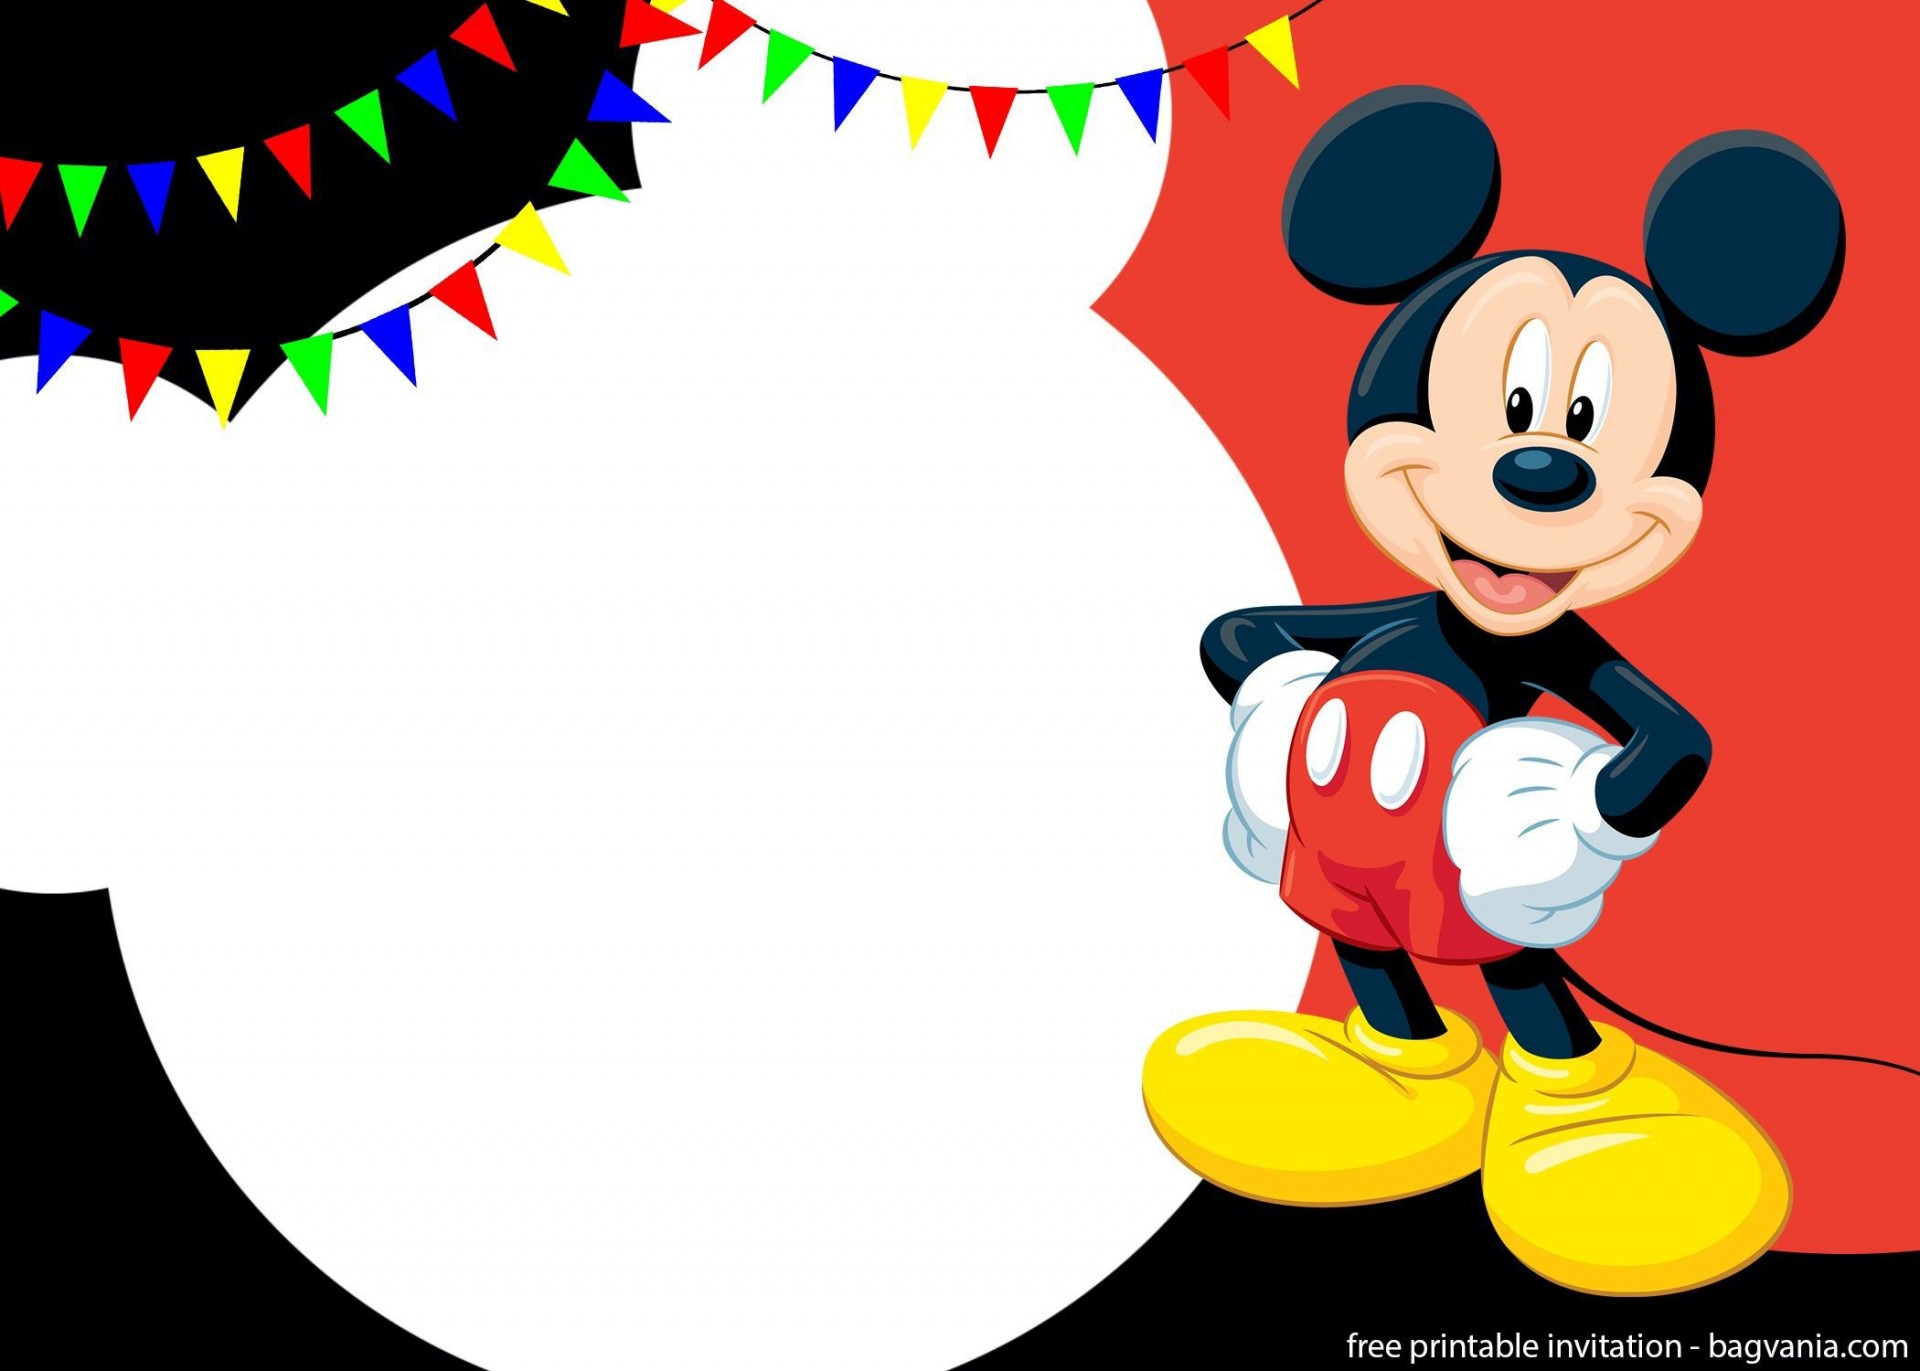 001 Amazing Mickey Mouse Invitation Template Highest Quality  Free Diy 1st Birthday Baby Download1920